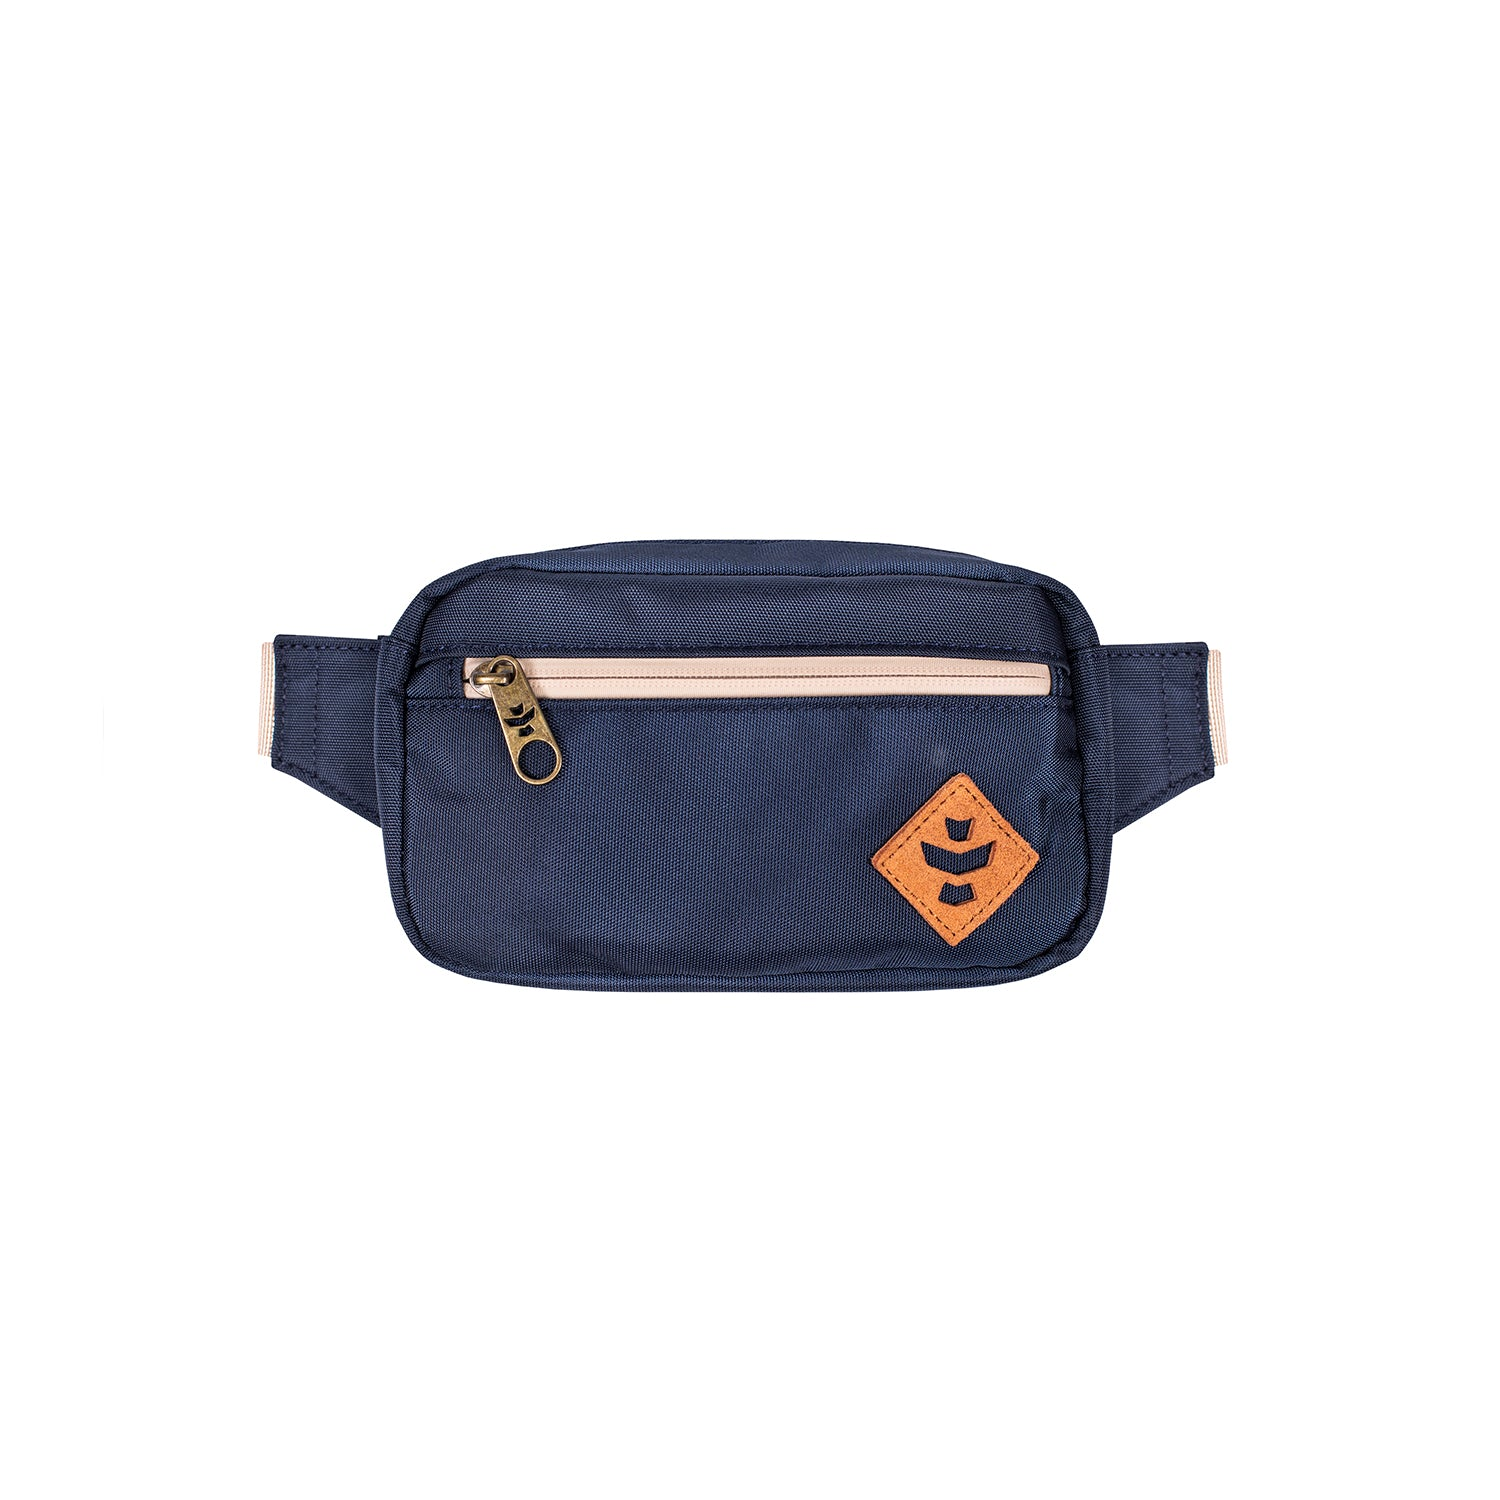 Navy Blue Nylon Smell Proof Water Resistant Crossbody Bag